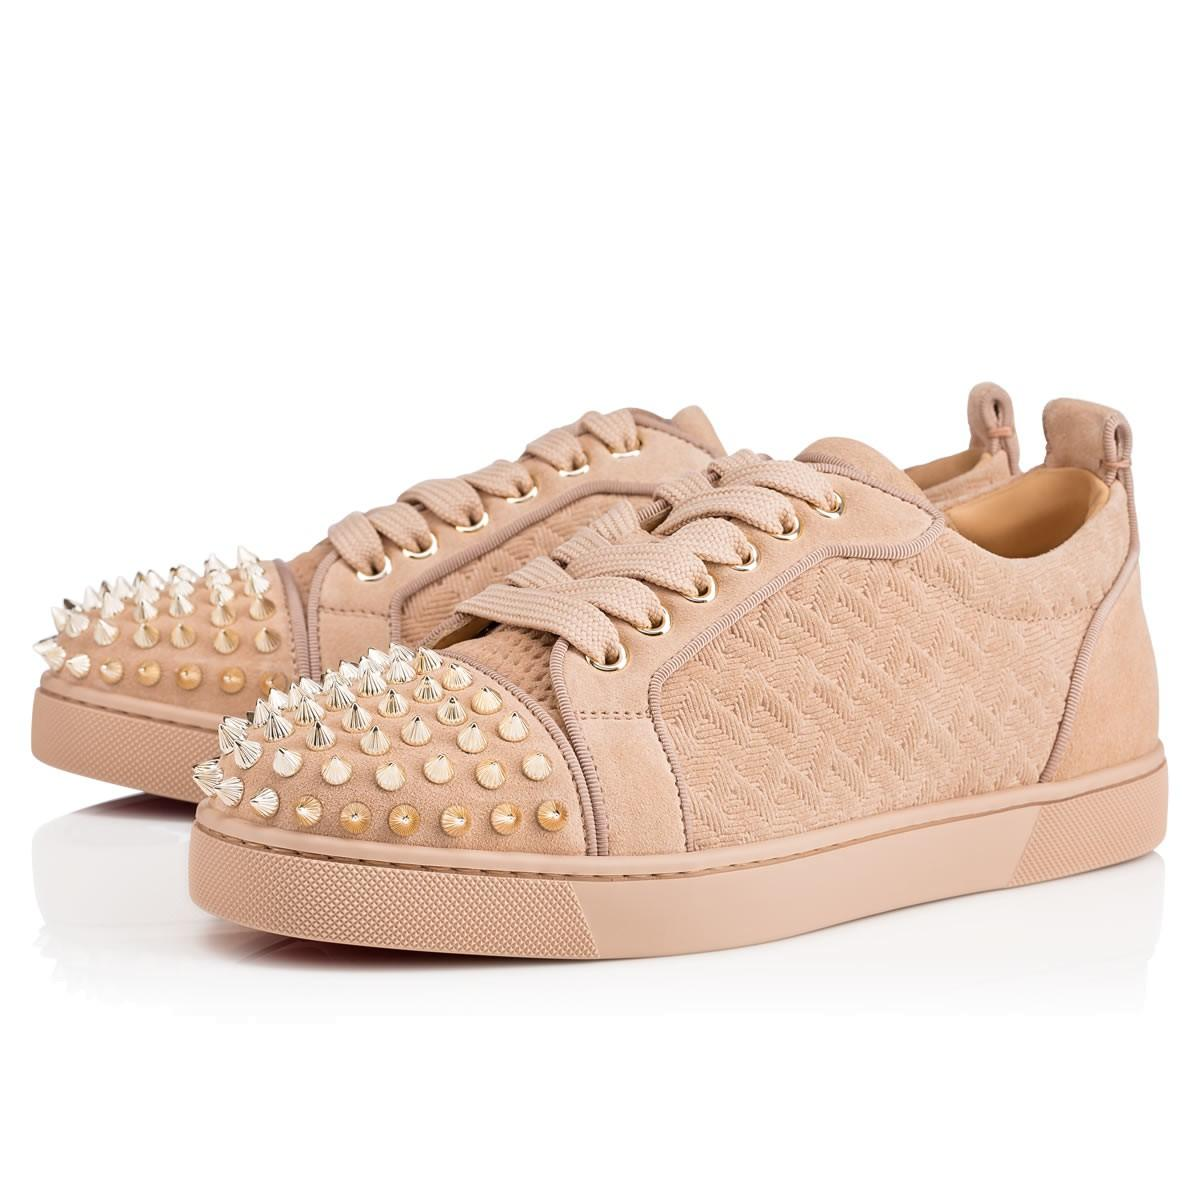 e34fe2b2d754 Christian Louboutin Louis Junior Spikes Woman Flat In Version Nu ...